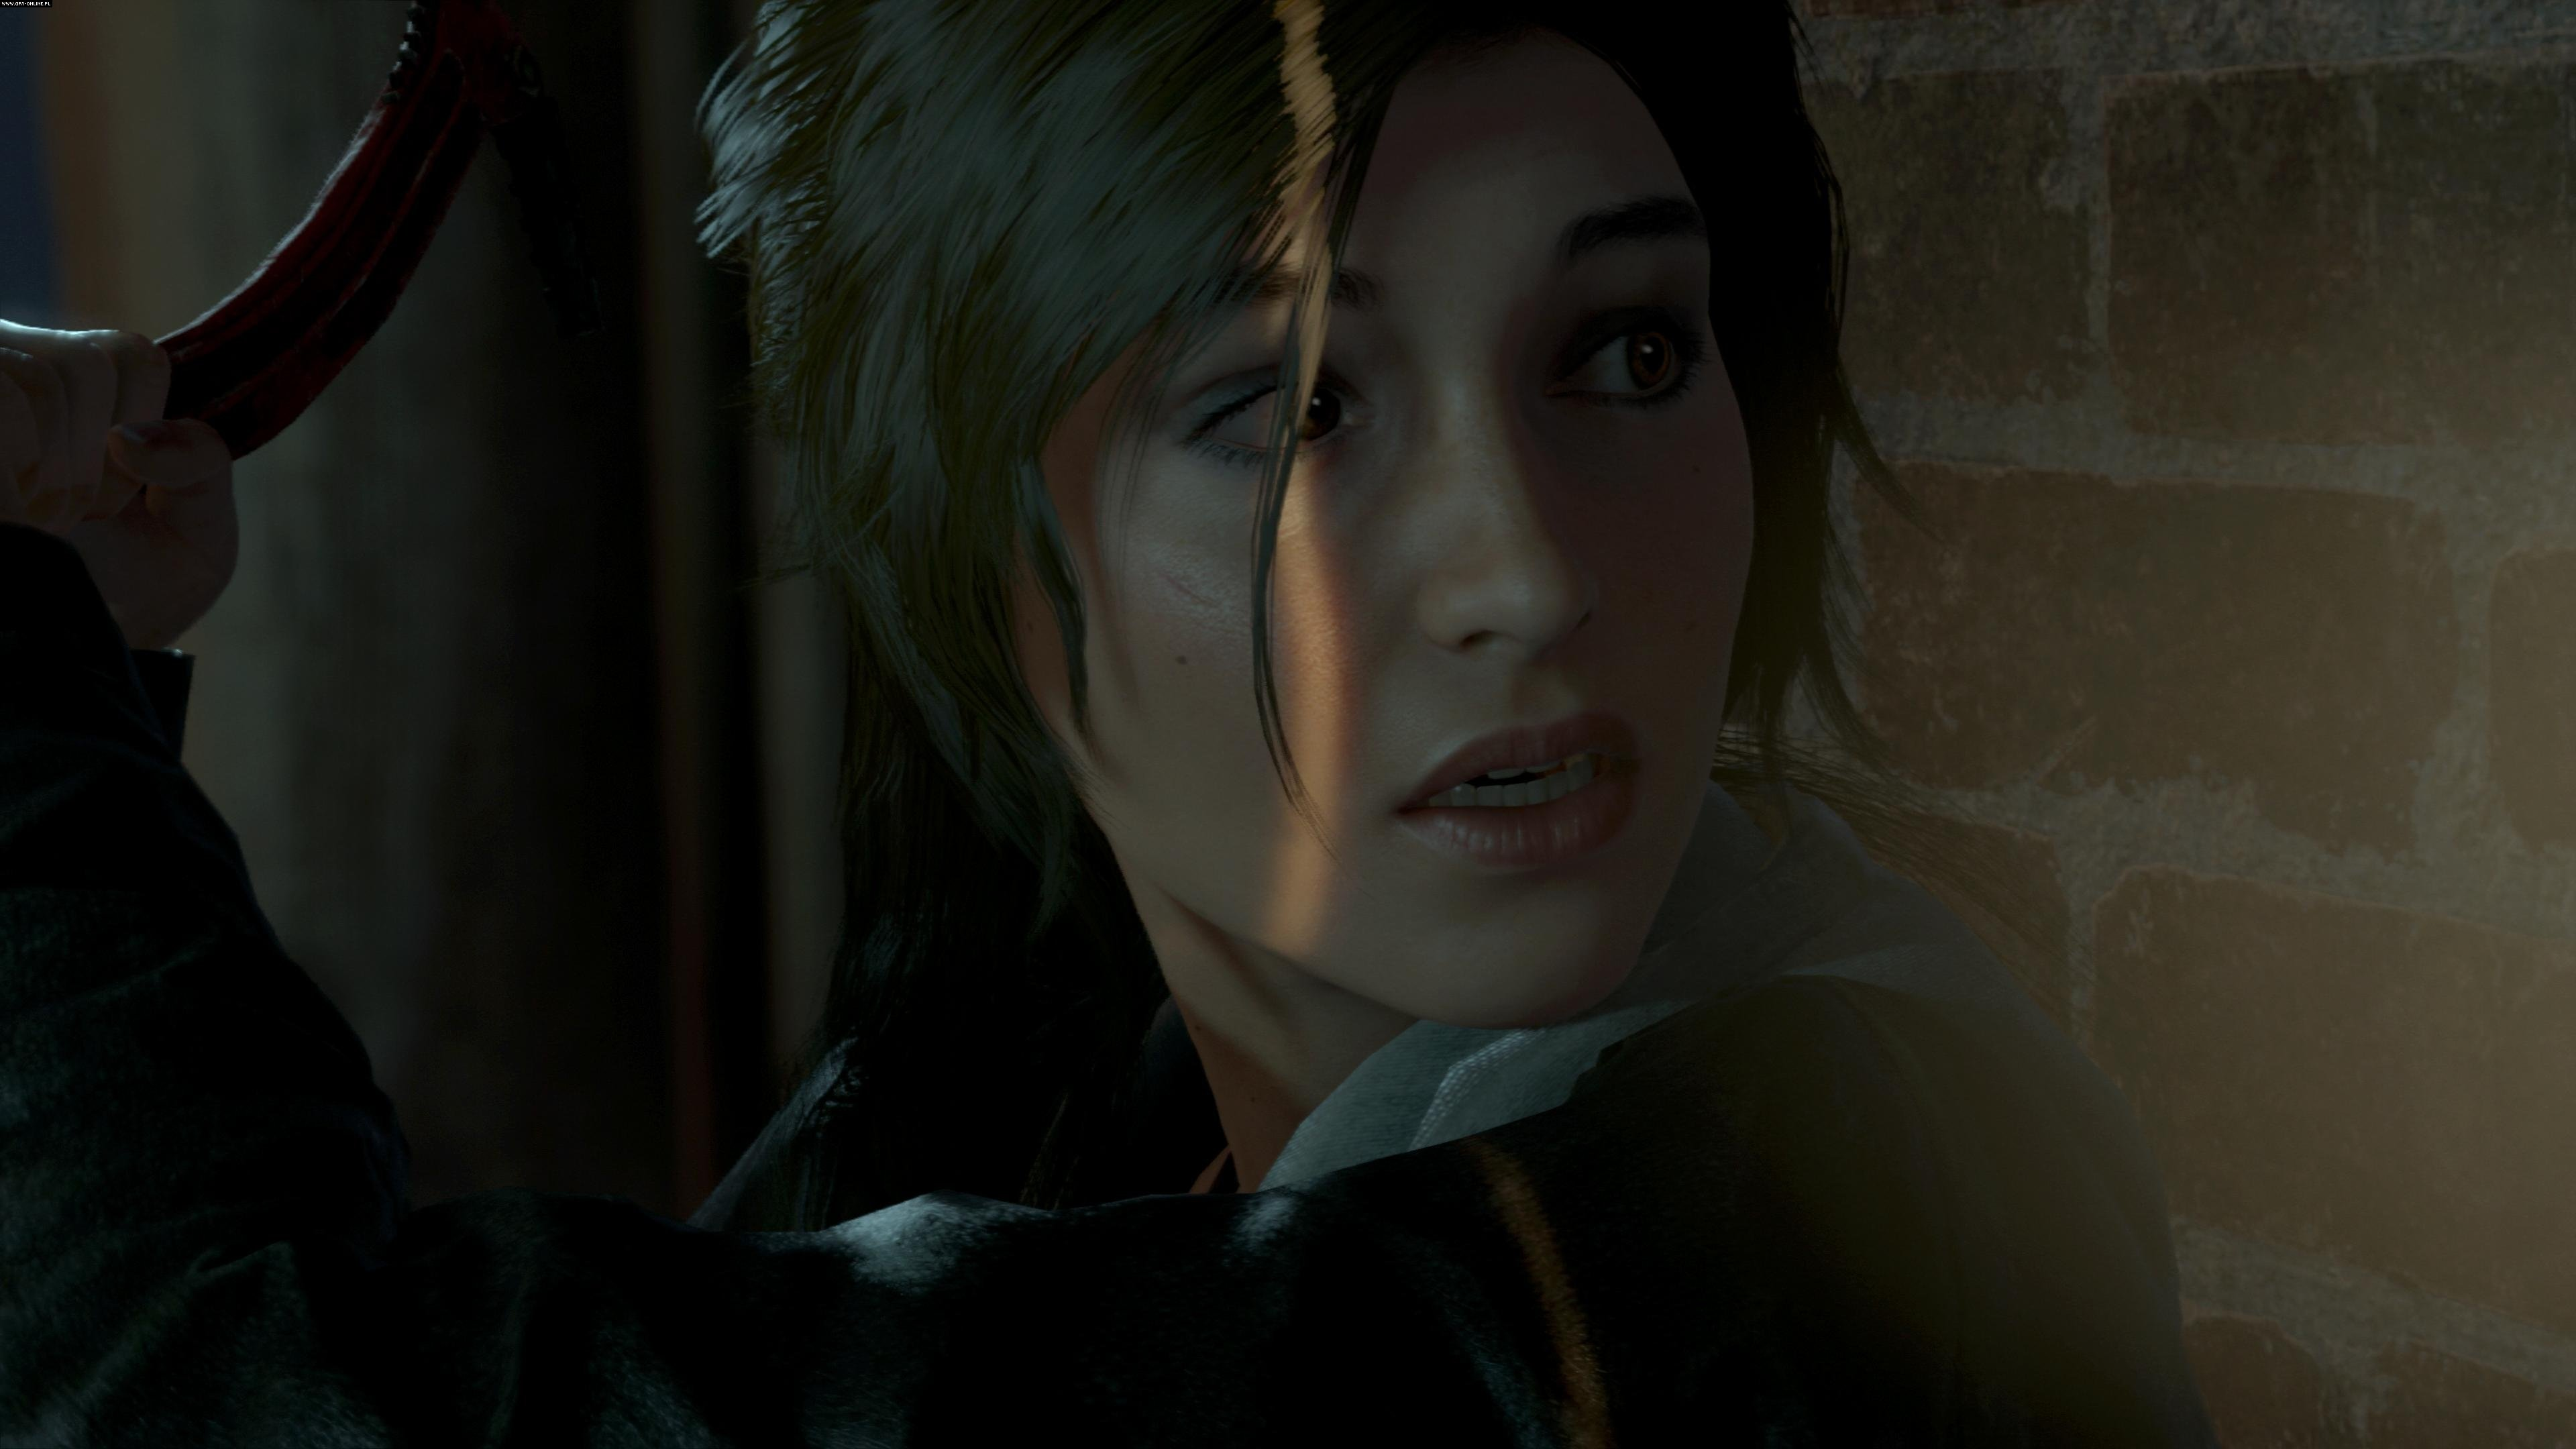 Rise of the Tomb Raider PC Games Image 3/126, Crystal Dynamics, Square-Enix / Eidos